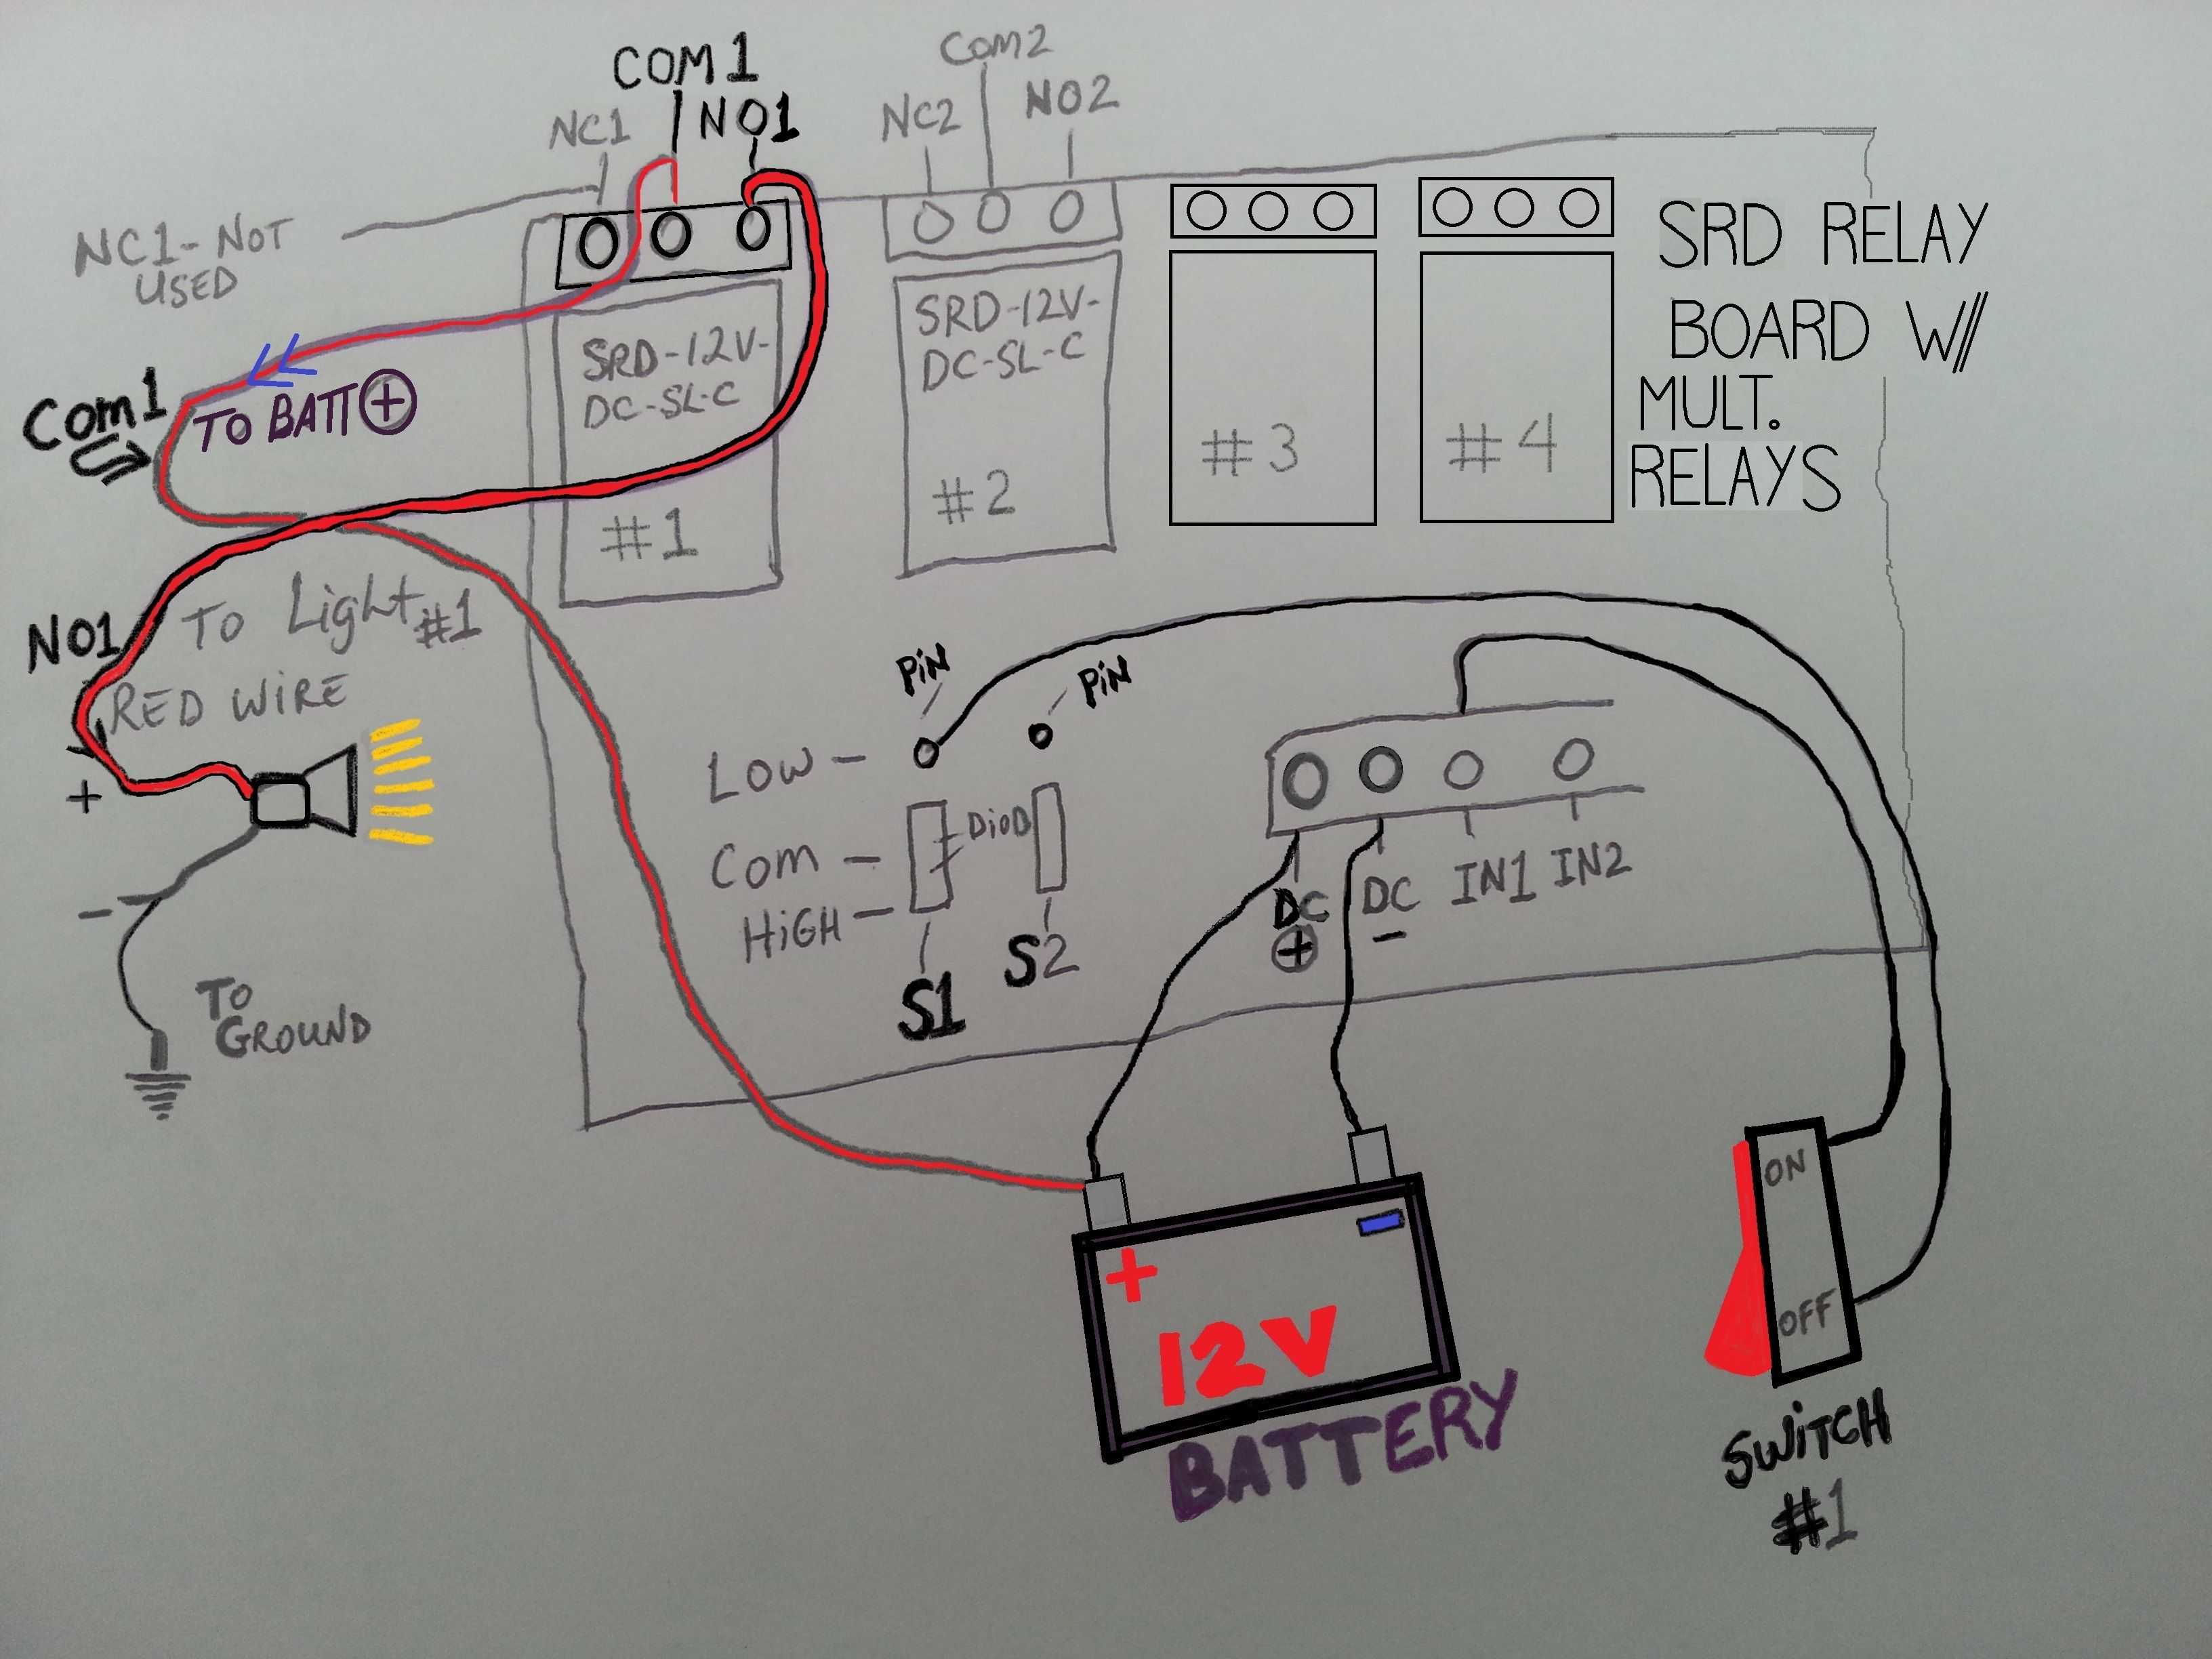 wiring diagram for srd relay board multiple relays on one board  [ 3264 x 2448 Pixel ]